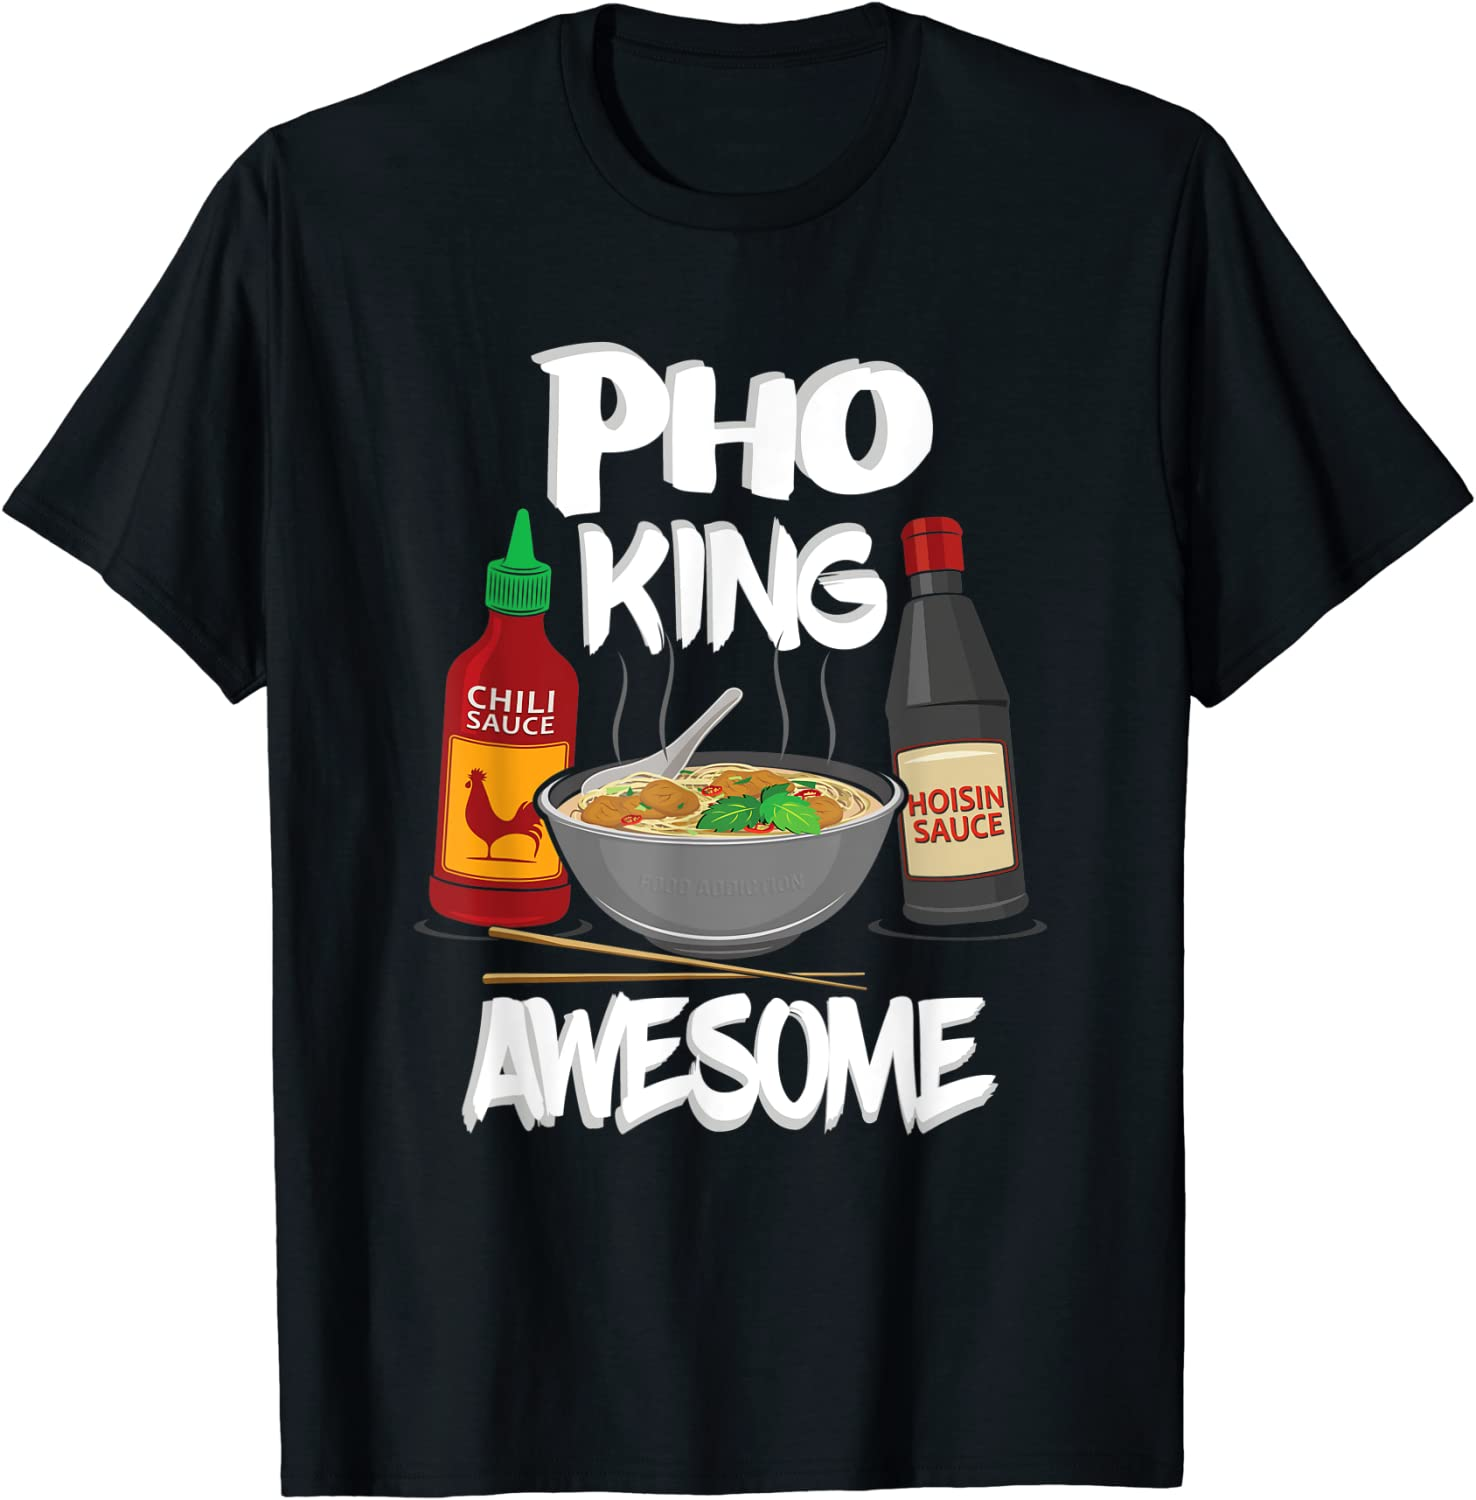 Funny Pho King Awesome Free shipping anywhere in Recommendation the nation Shirt T-Shirt Gift Tshirt Ideas Bowl